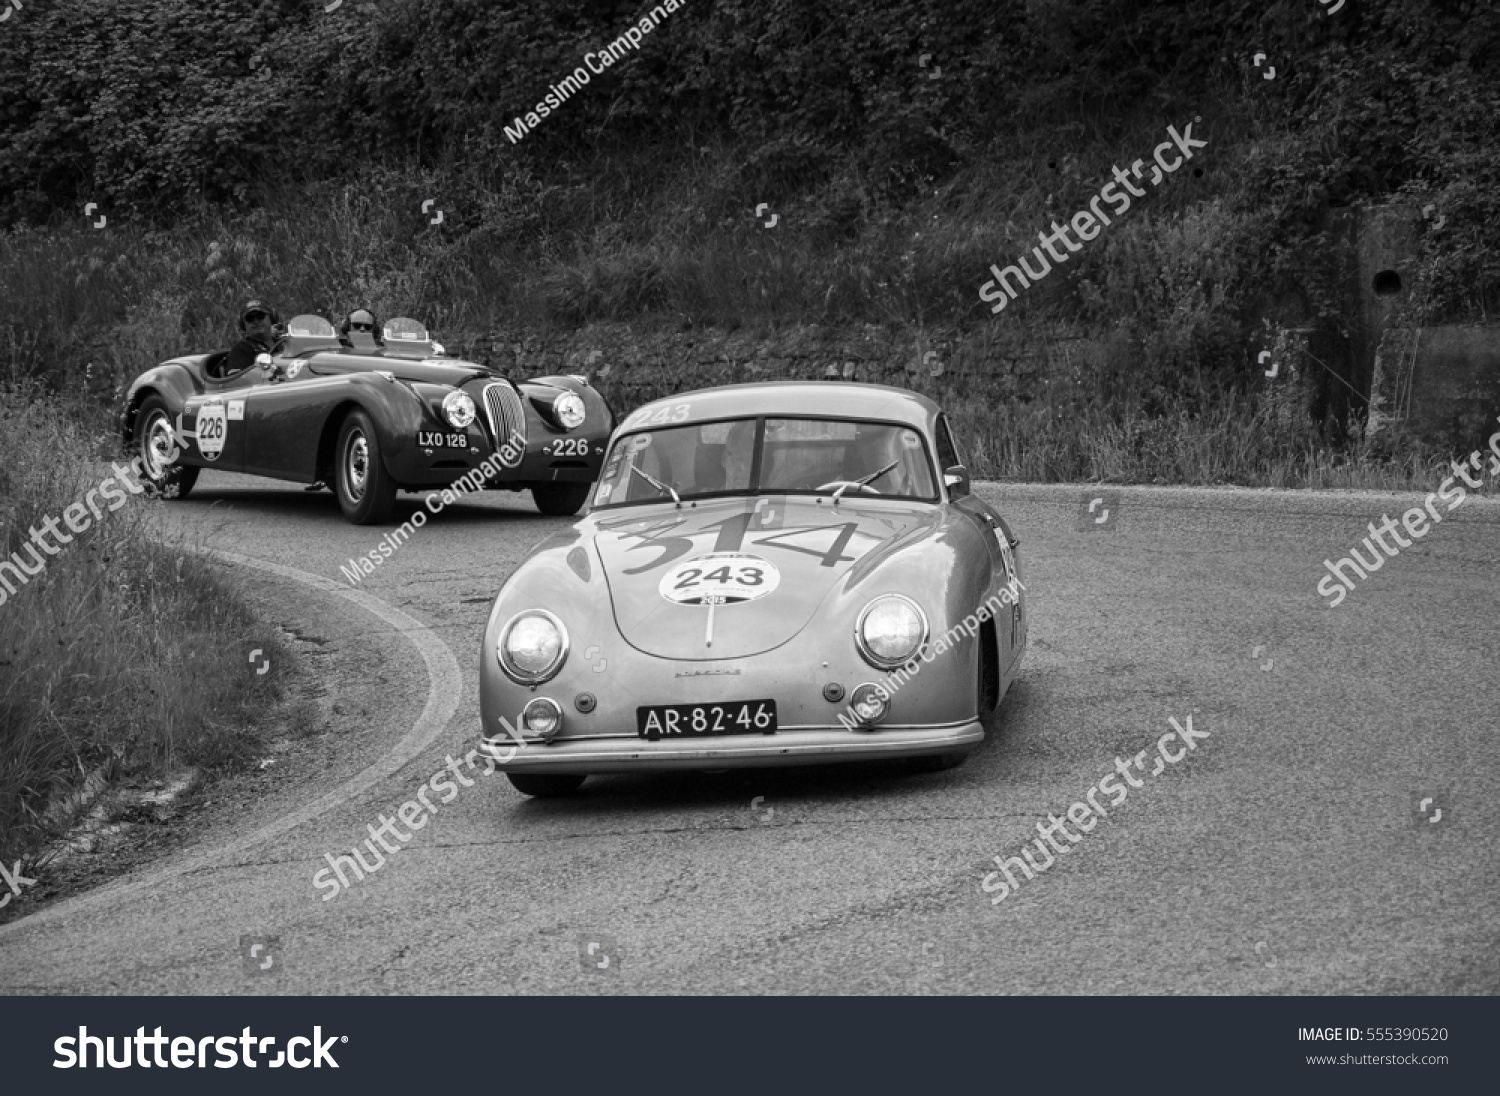 Pesaro Italy May 15 Porsche 356 Stock Photo 555390520 - Shutterstock